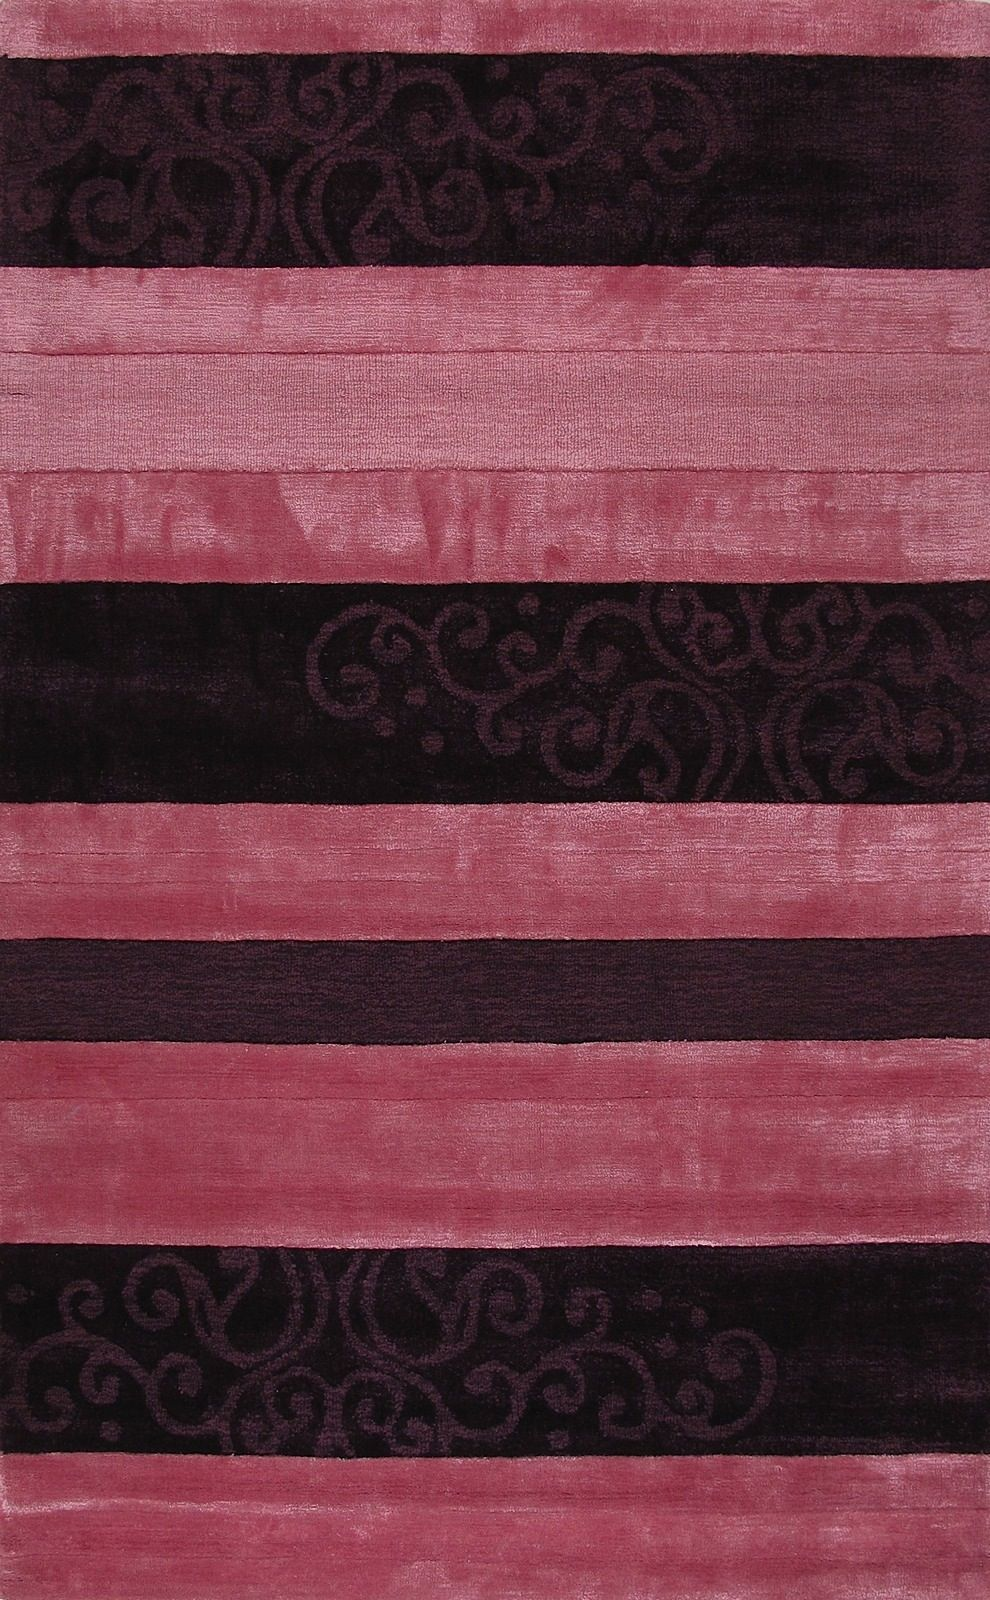 la rugs mumbai solid/striped area rug collection